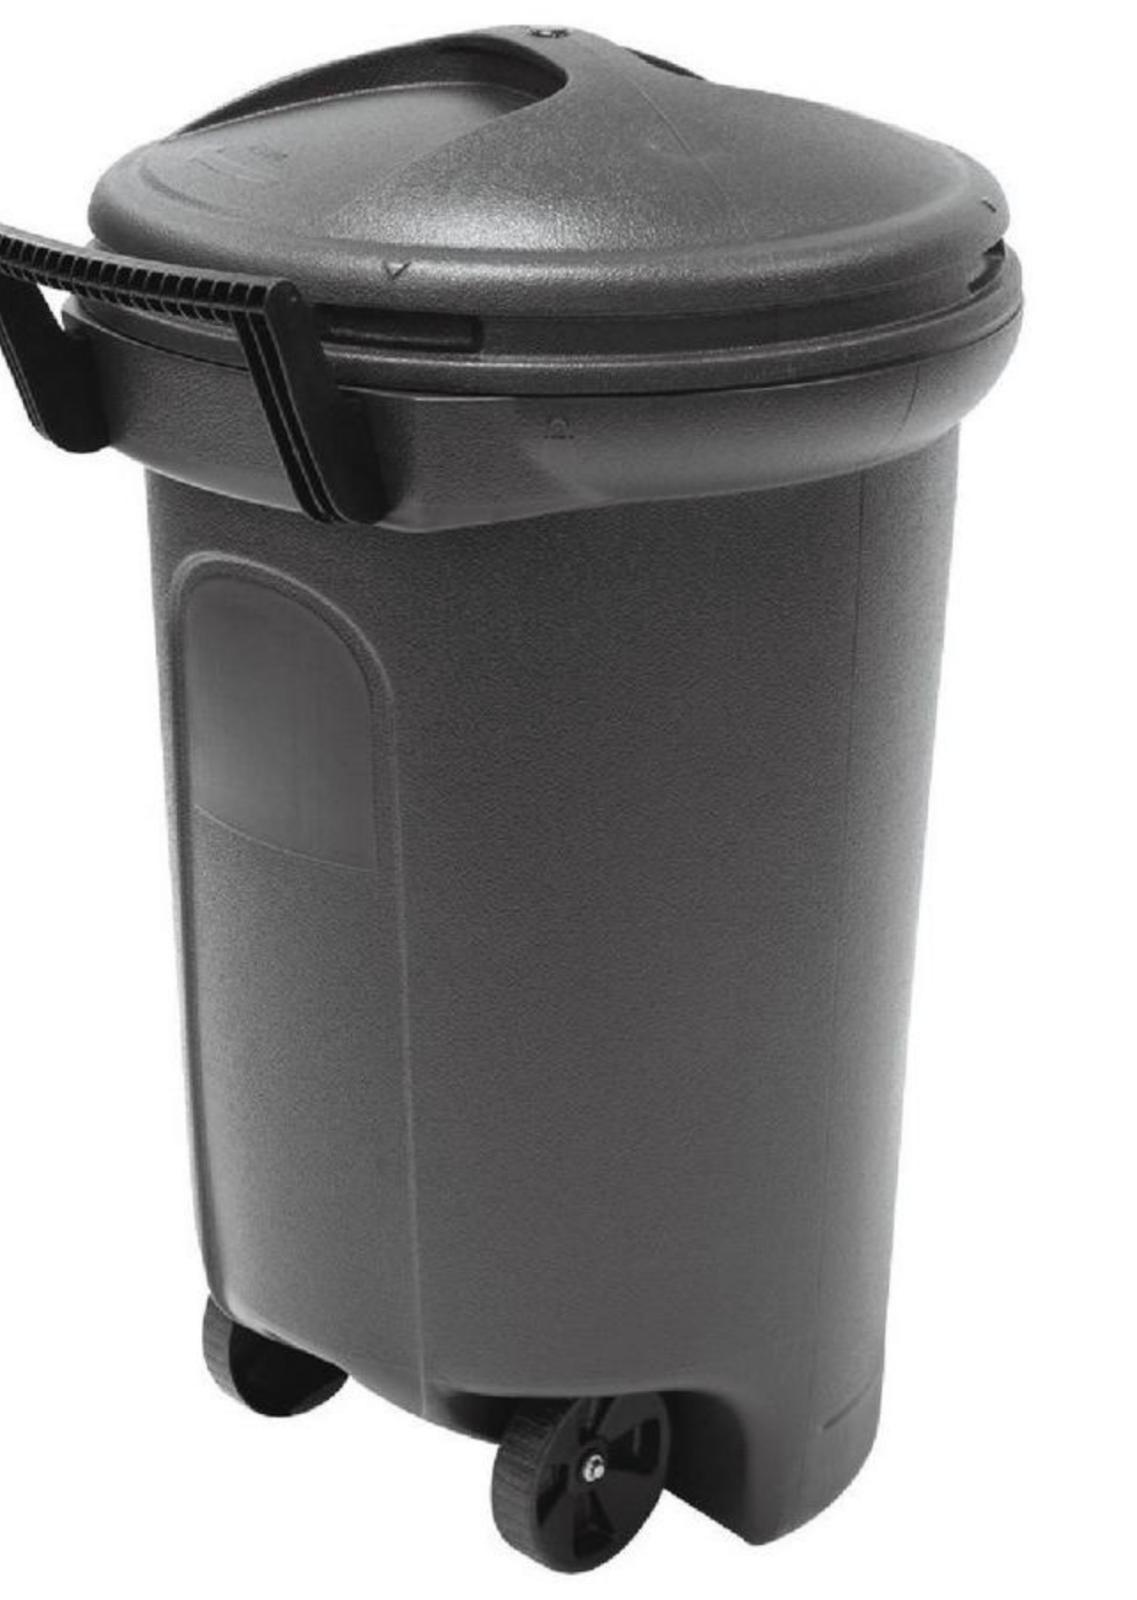 32 GALLON WHEELED TRASH CAN Garbage Container Outdoor Plasti